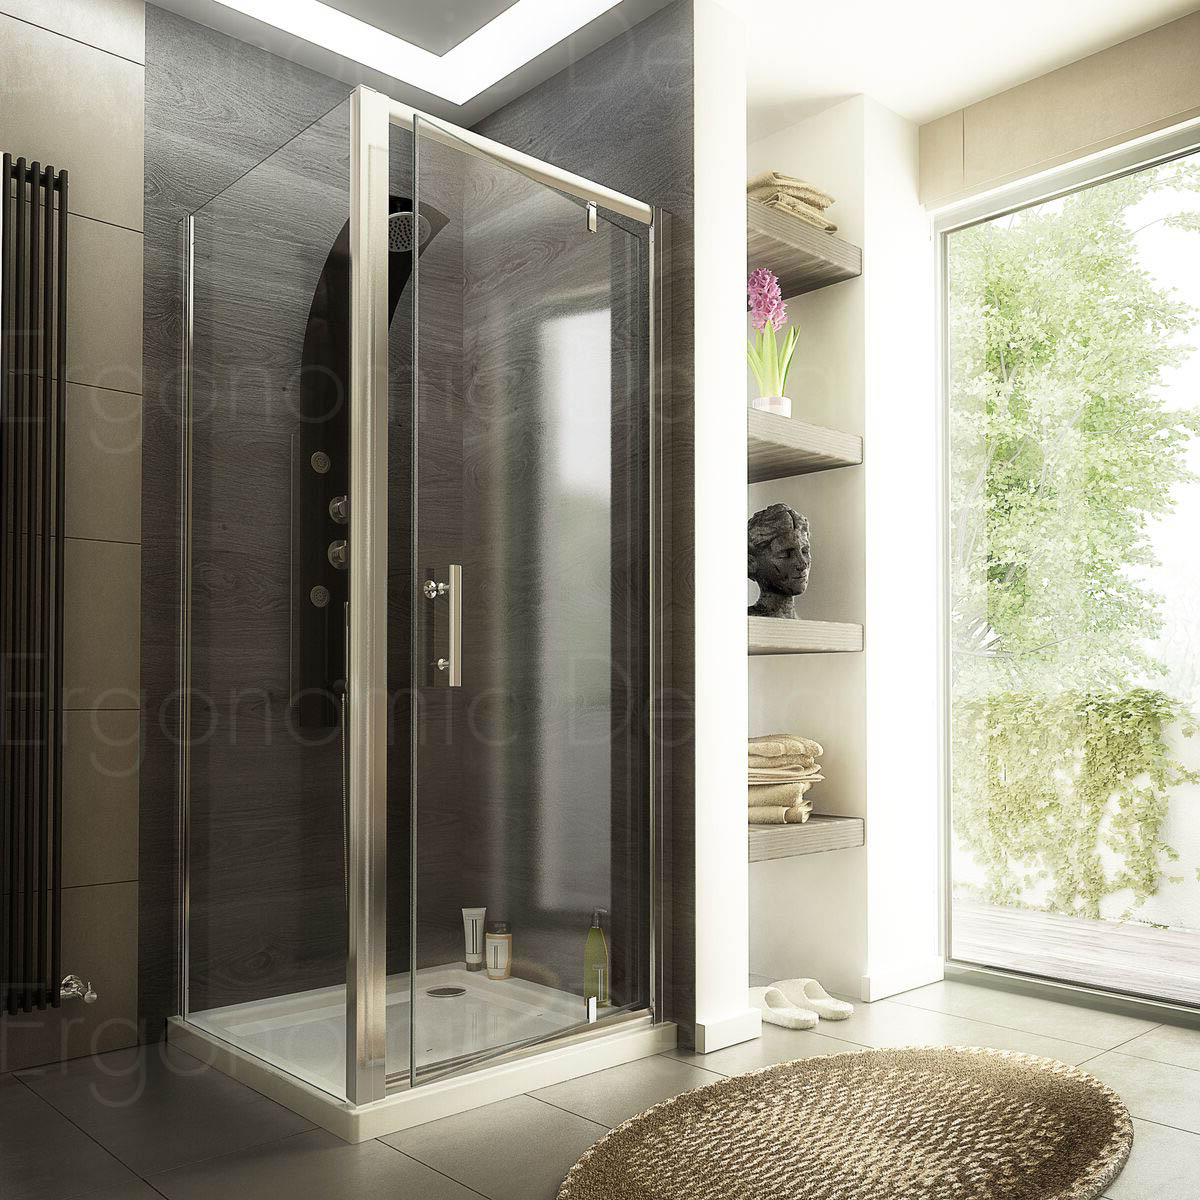 800 x 800 Pivot Door Glass Shower Enclosure with Stone Tray and Waste